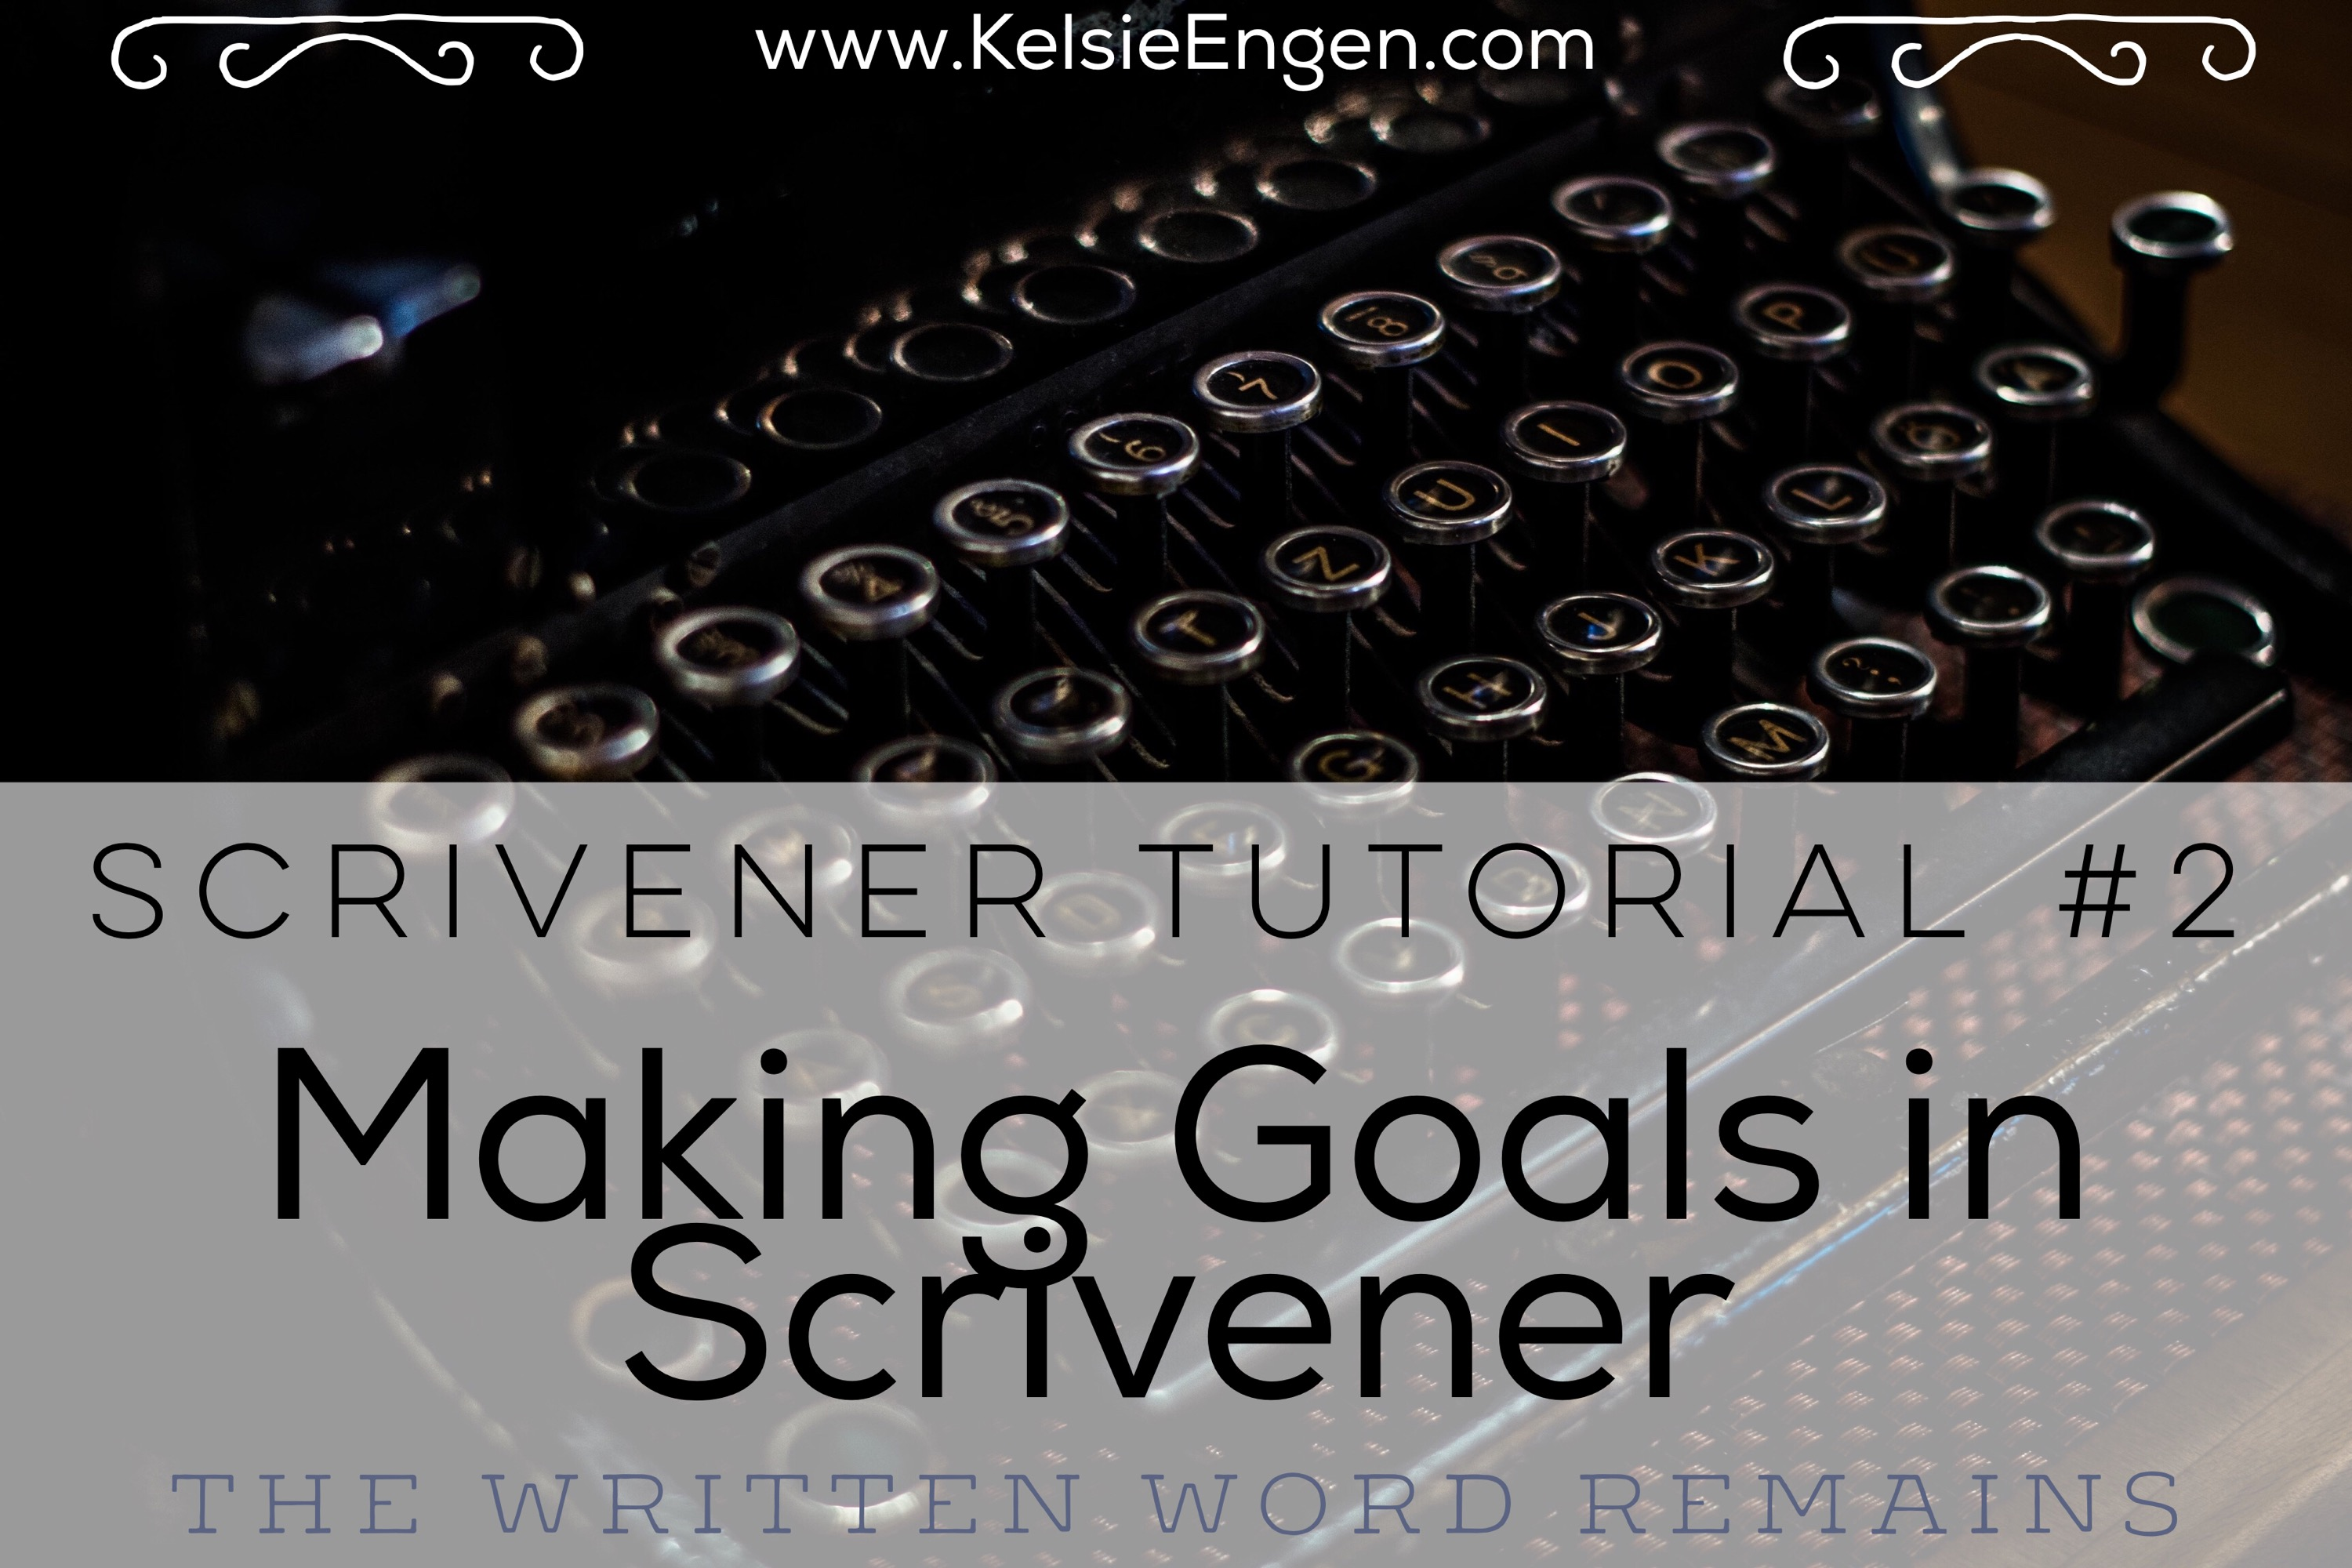 Scrivener Tutorial #2: Making Document Goals in Scrivener